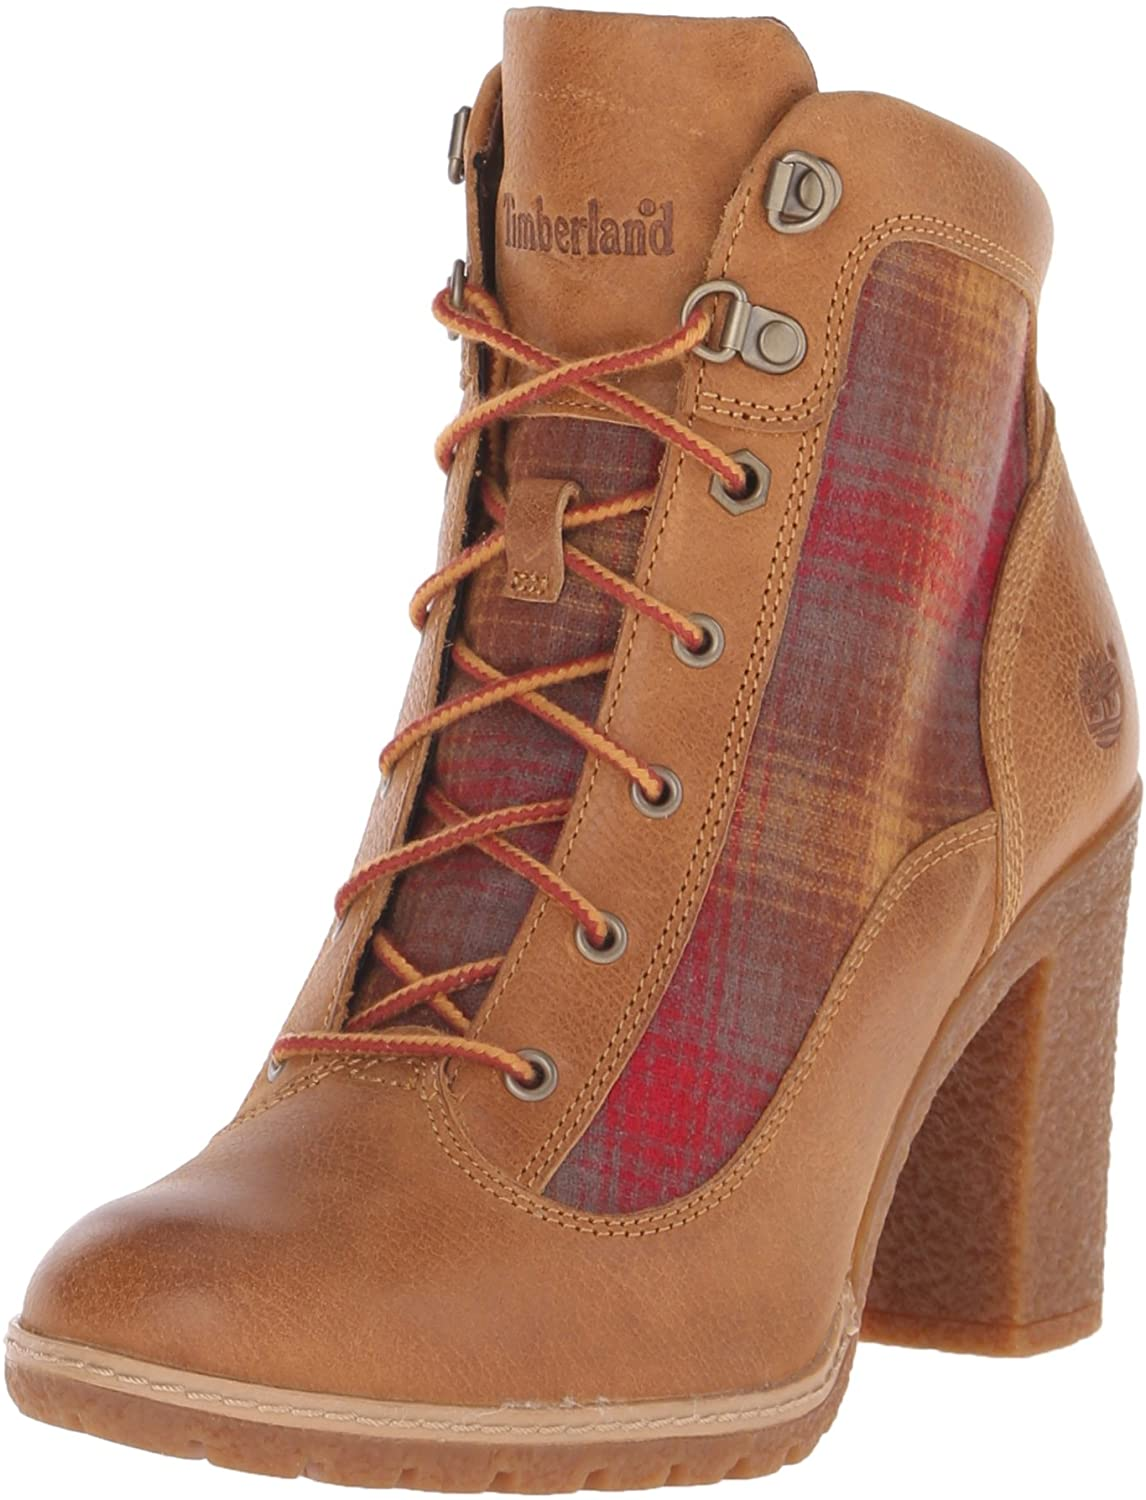 Timberland Women's Glancy Lace-Up Boot